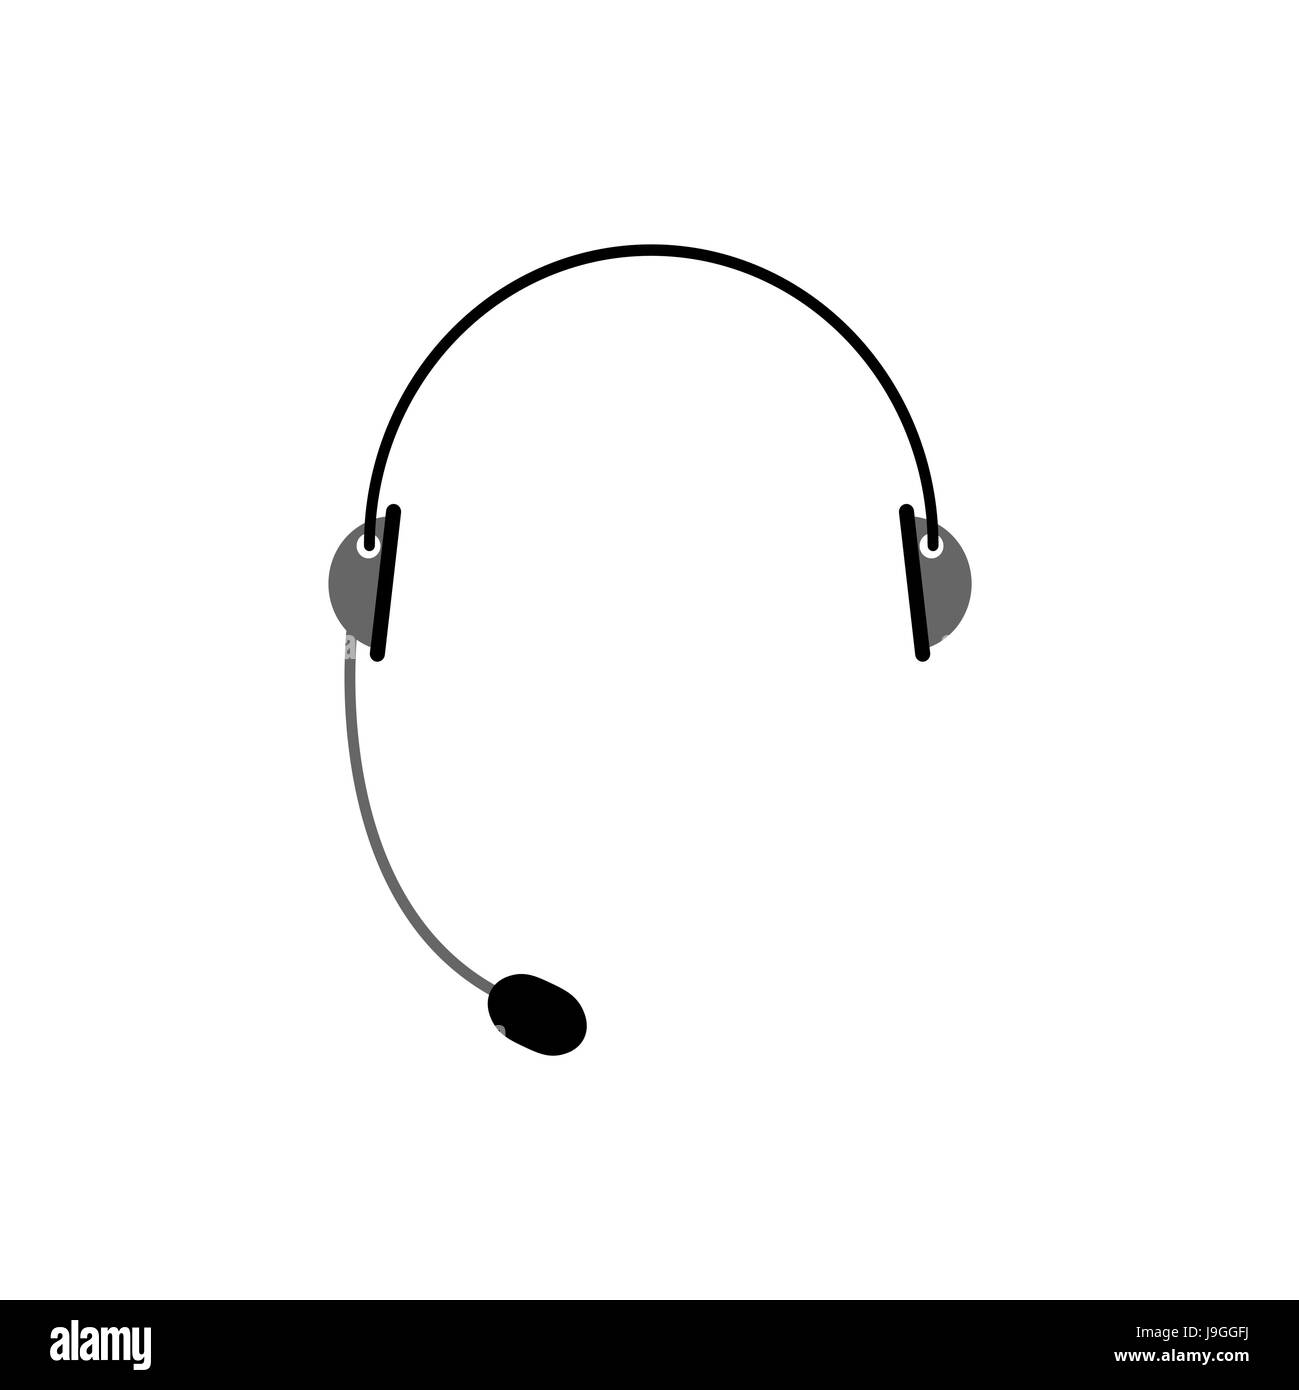 Headset isolated. Microphone and headphones on white background. Cal center accessory - Stock Image